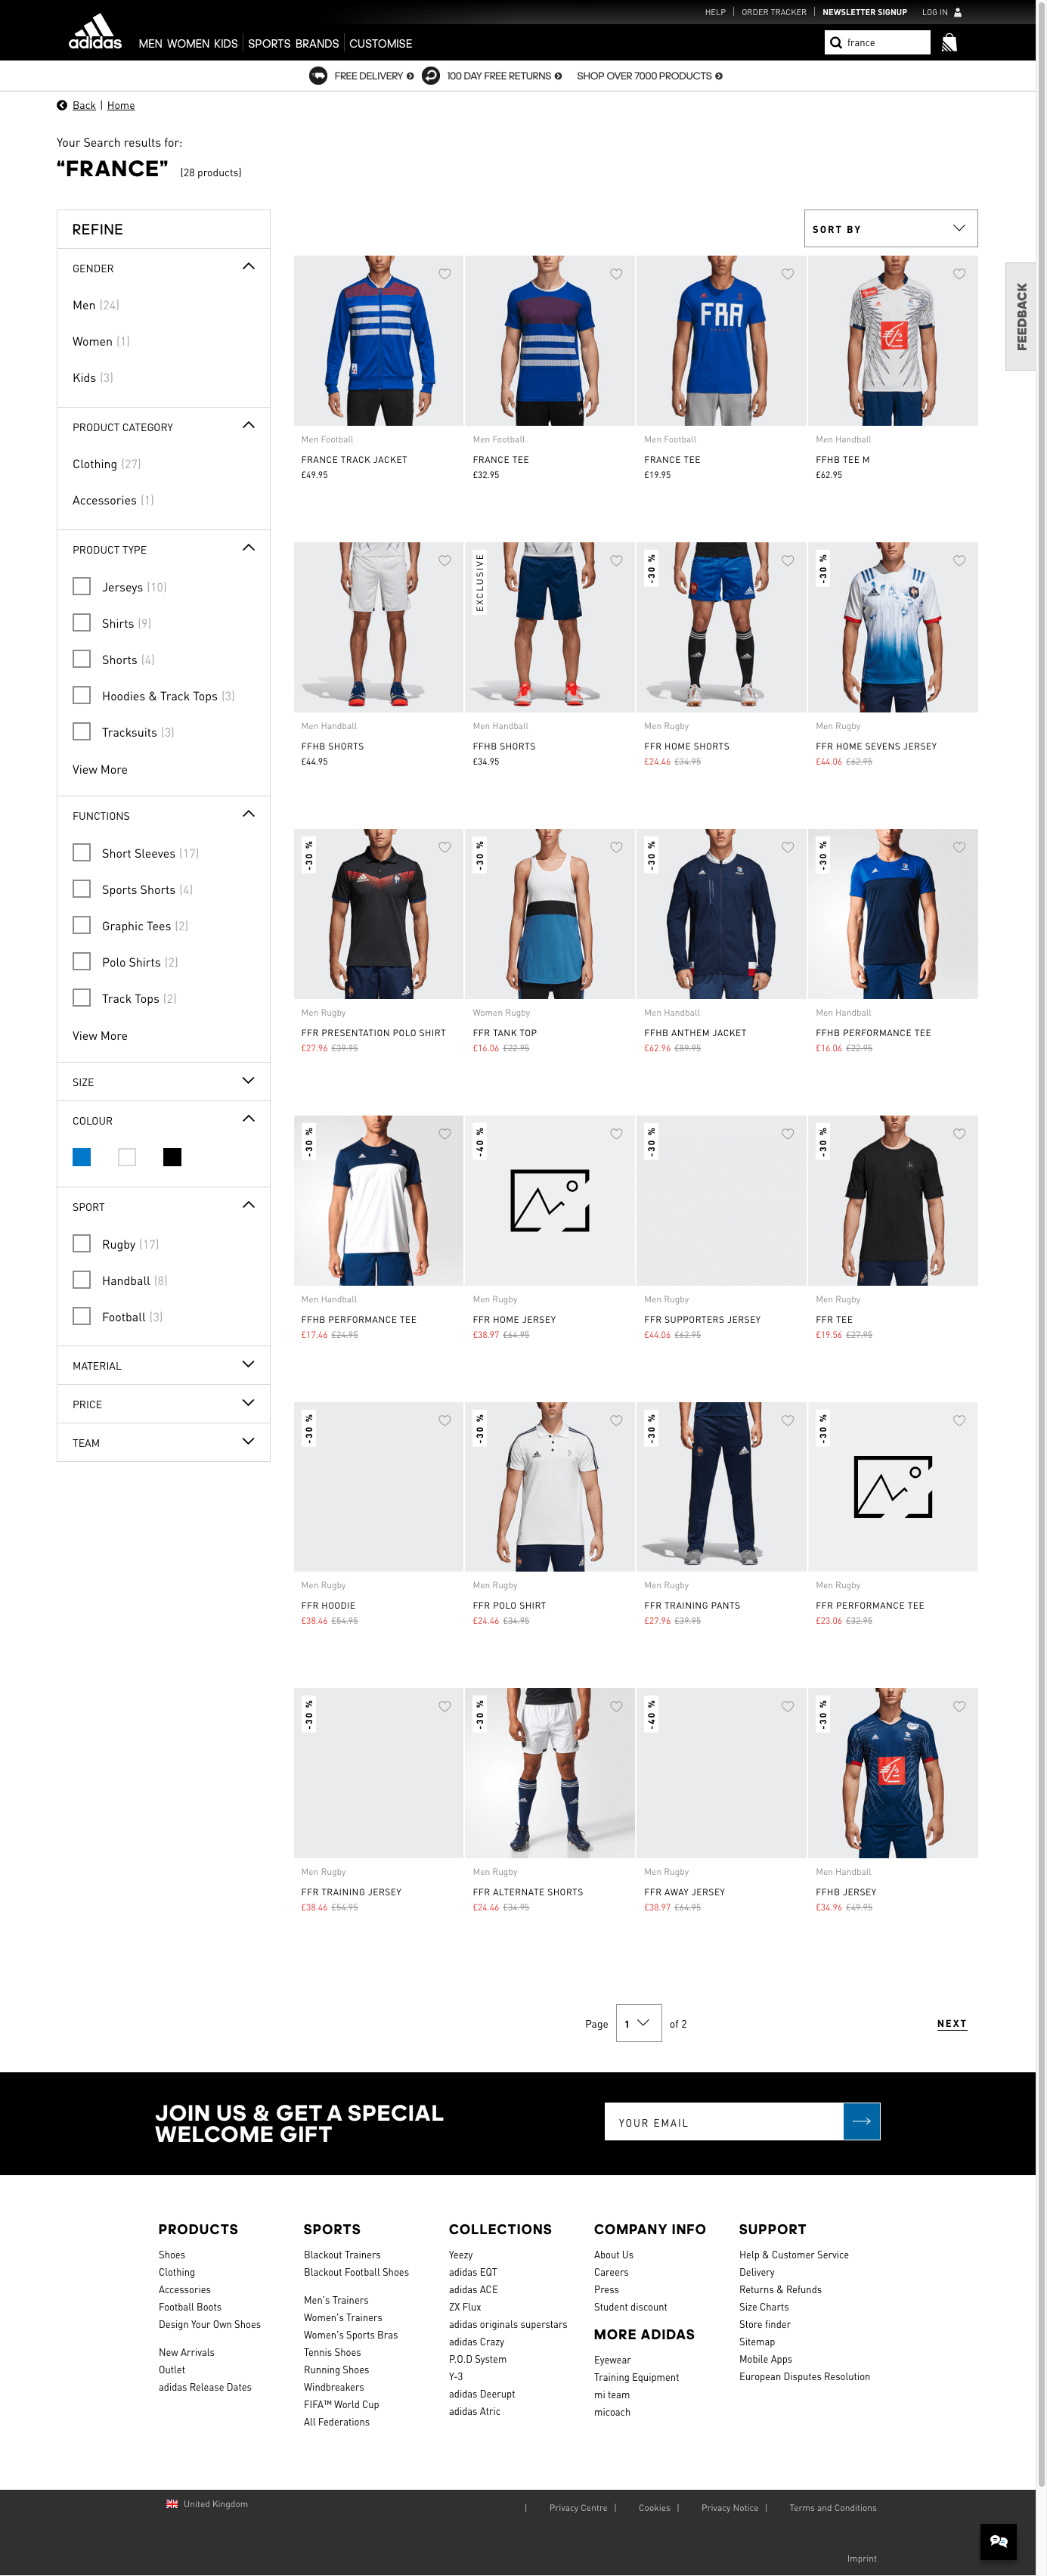 adidas.co.uk_june_2018_search_france